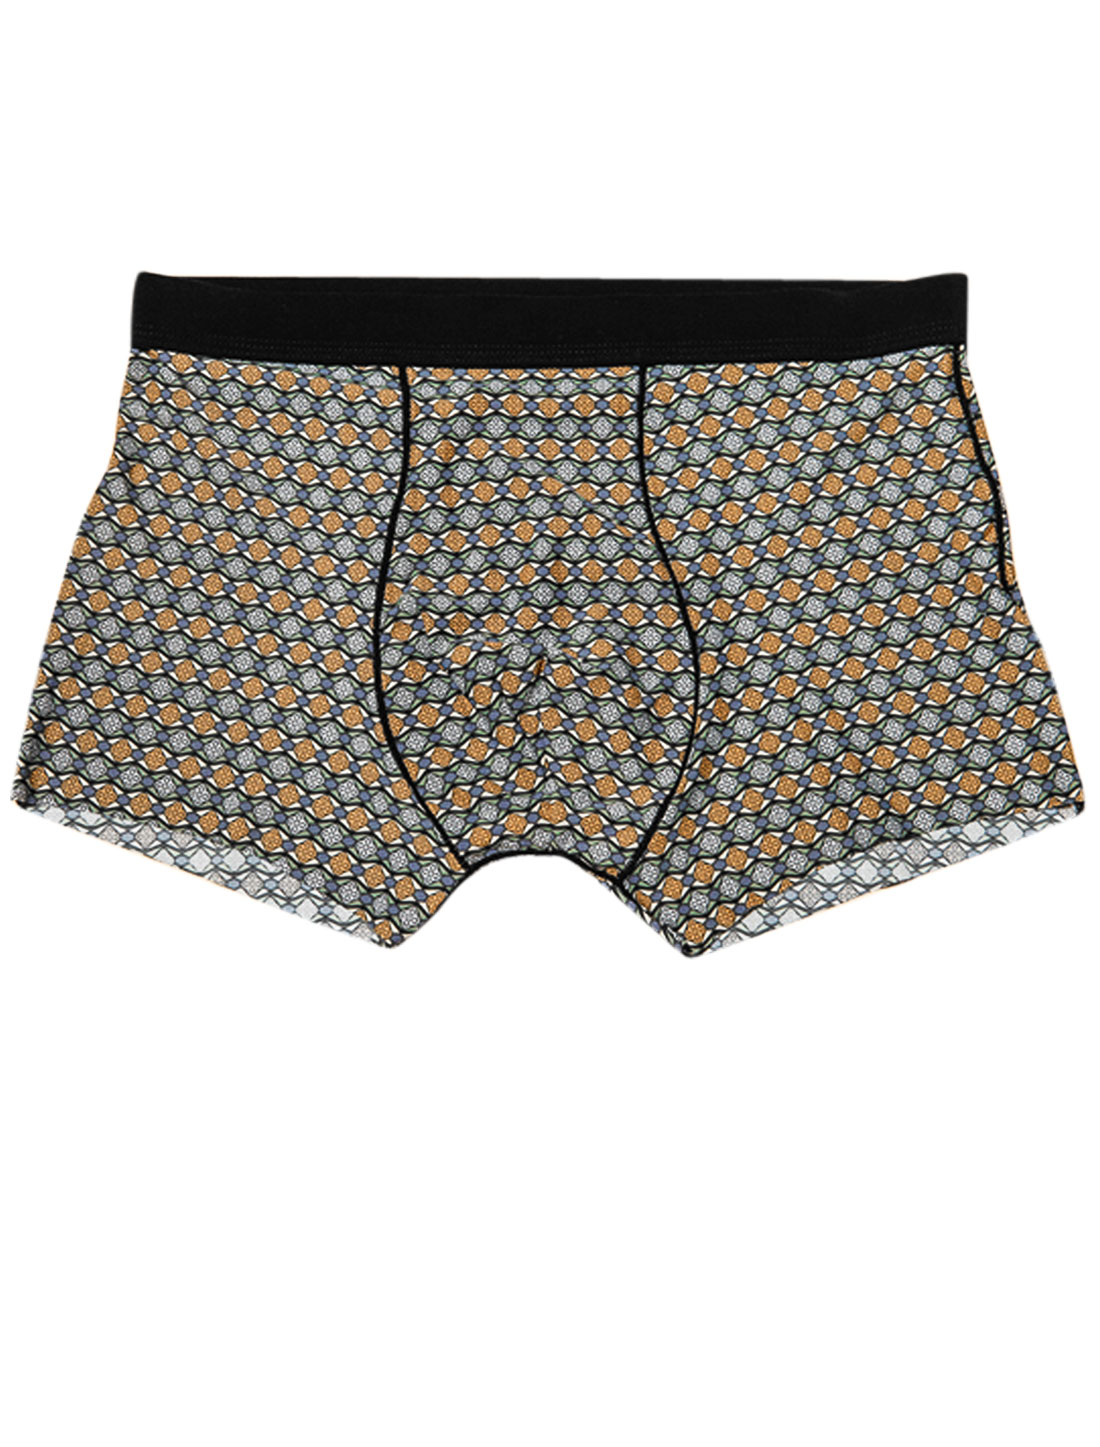 Men Mid-Rise Geometric Cross Pattern Stretchy Boxer Briefs Gray Orange W30